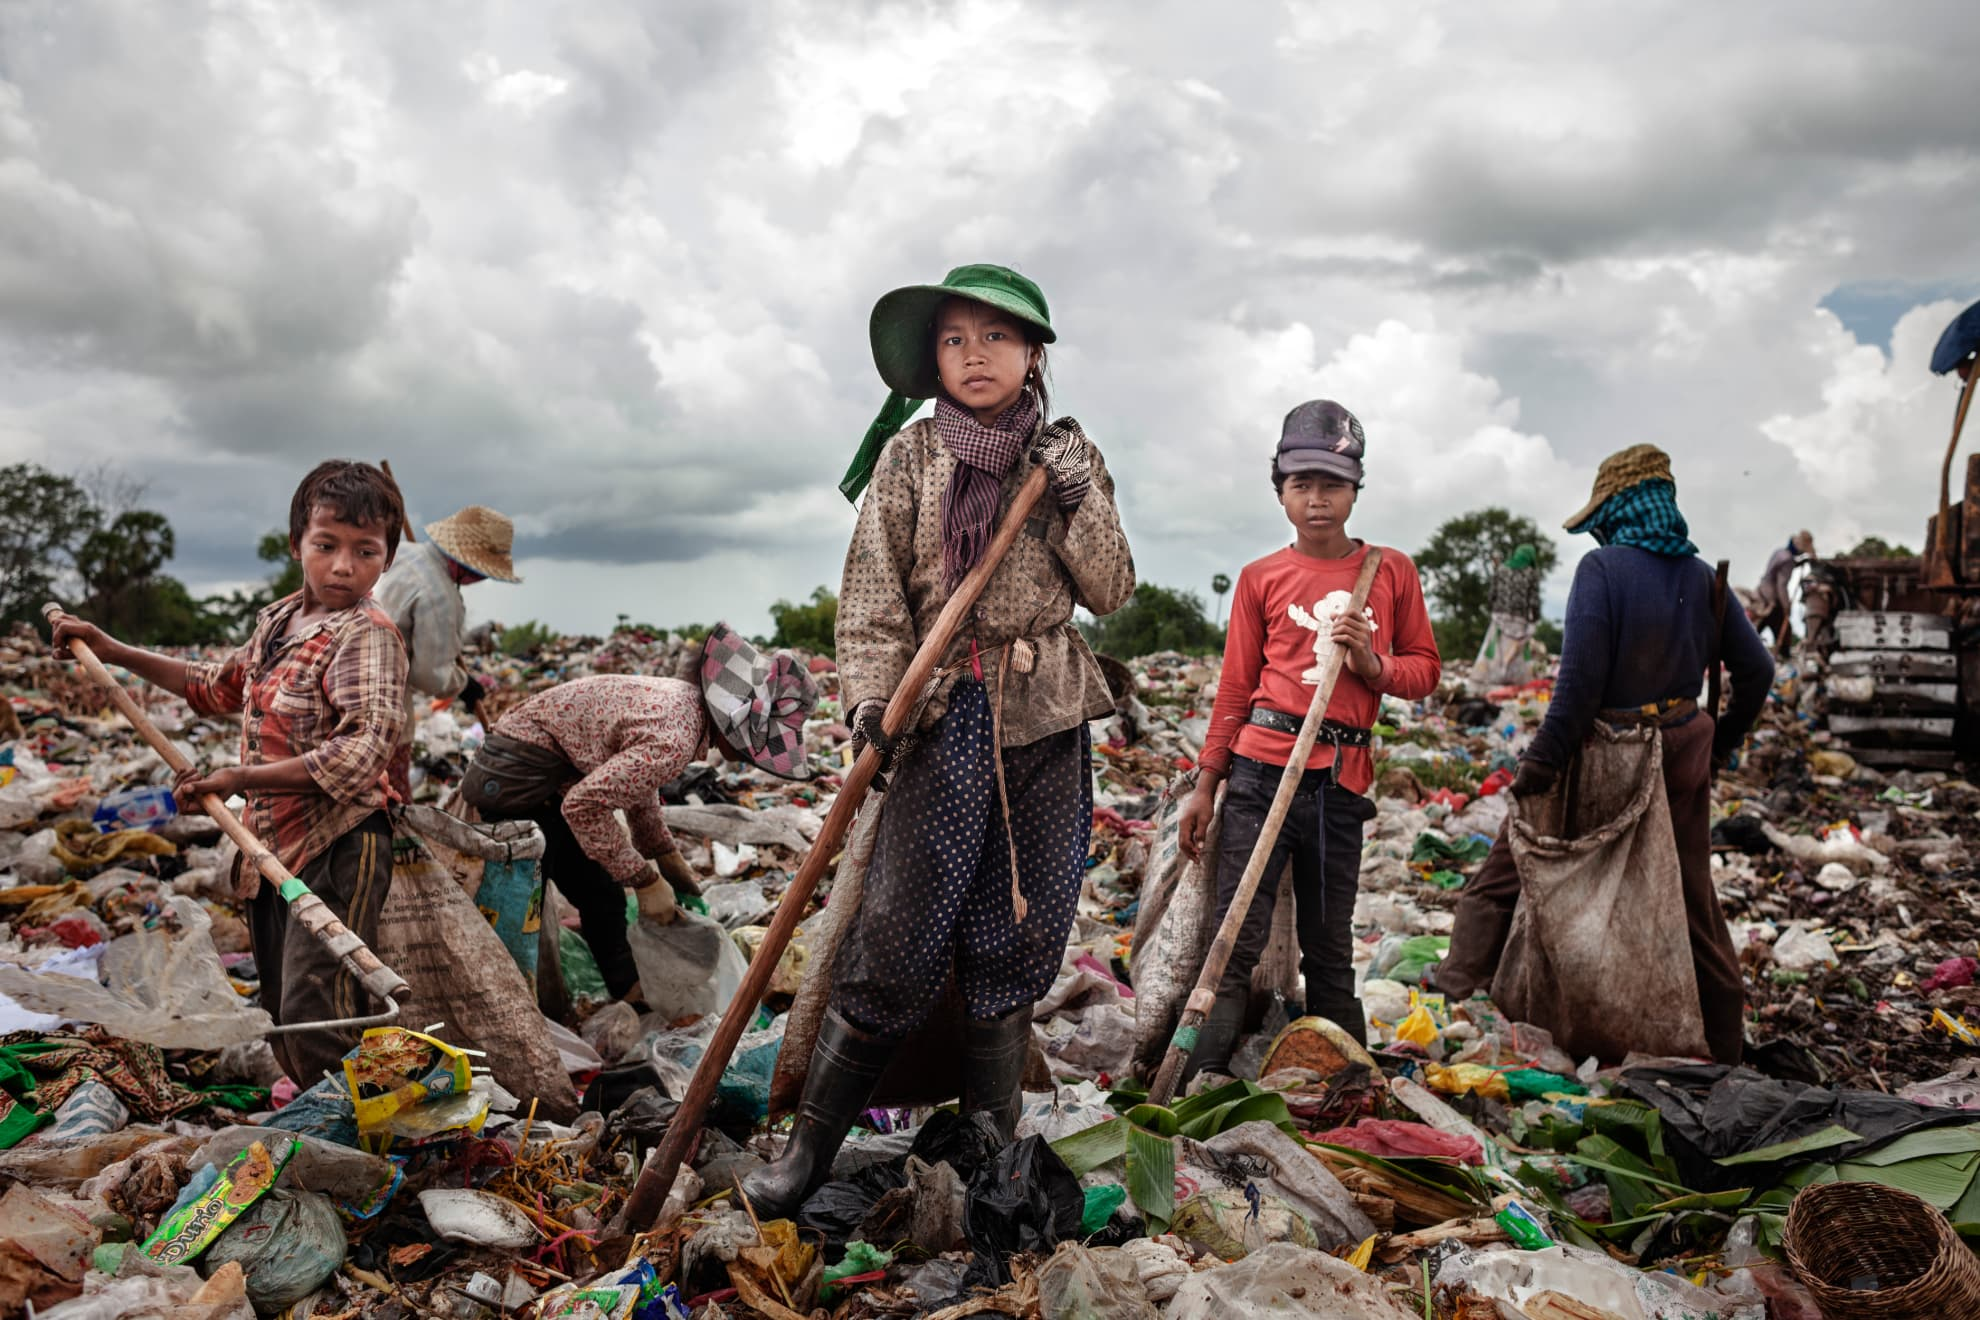 Sueun Chany, aged 14, began working at the dump at the age of 14. There are seven people in her family. In the future, she would like to be a teacher.